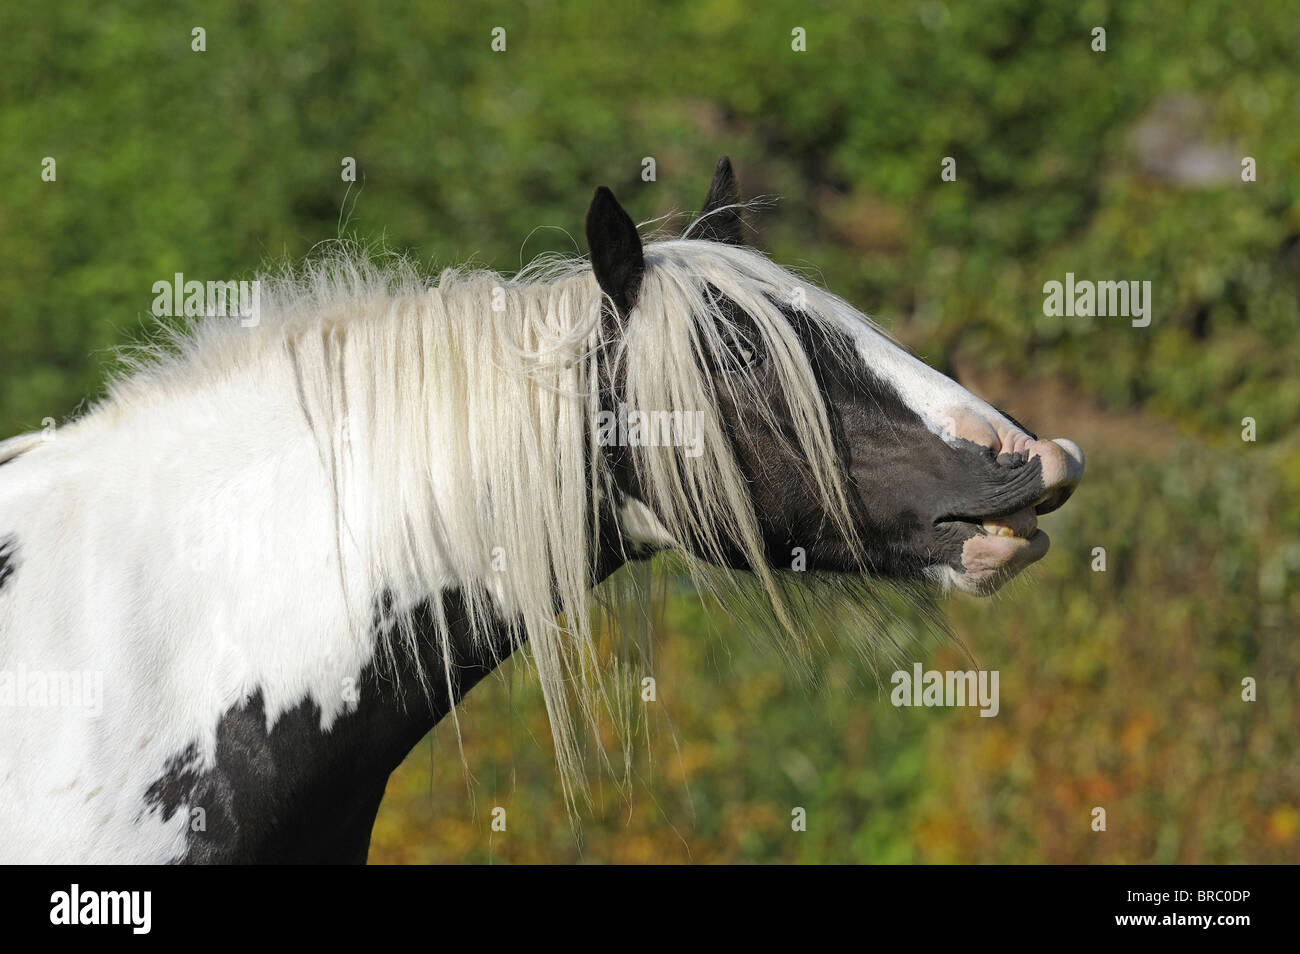 Gypsy Vanner Horse (Equus ferus caballus), mare doing the flehmen. - Stock Image